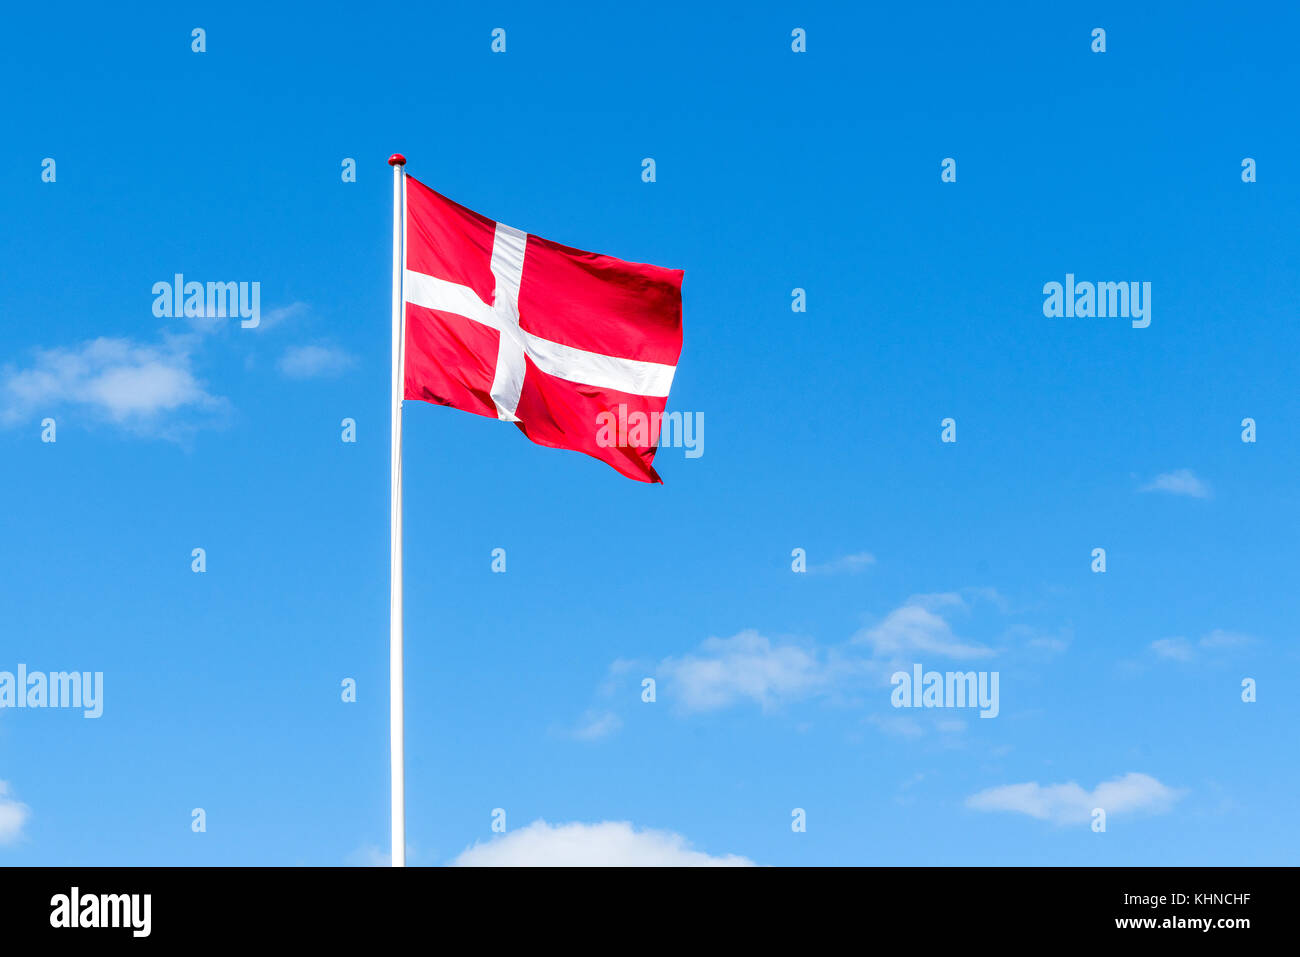 The danish flag in red and white waving in the wind on a flagstaff with a blue sky in the background - Stock Image